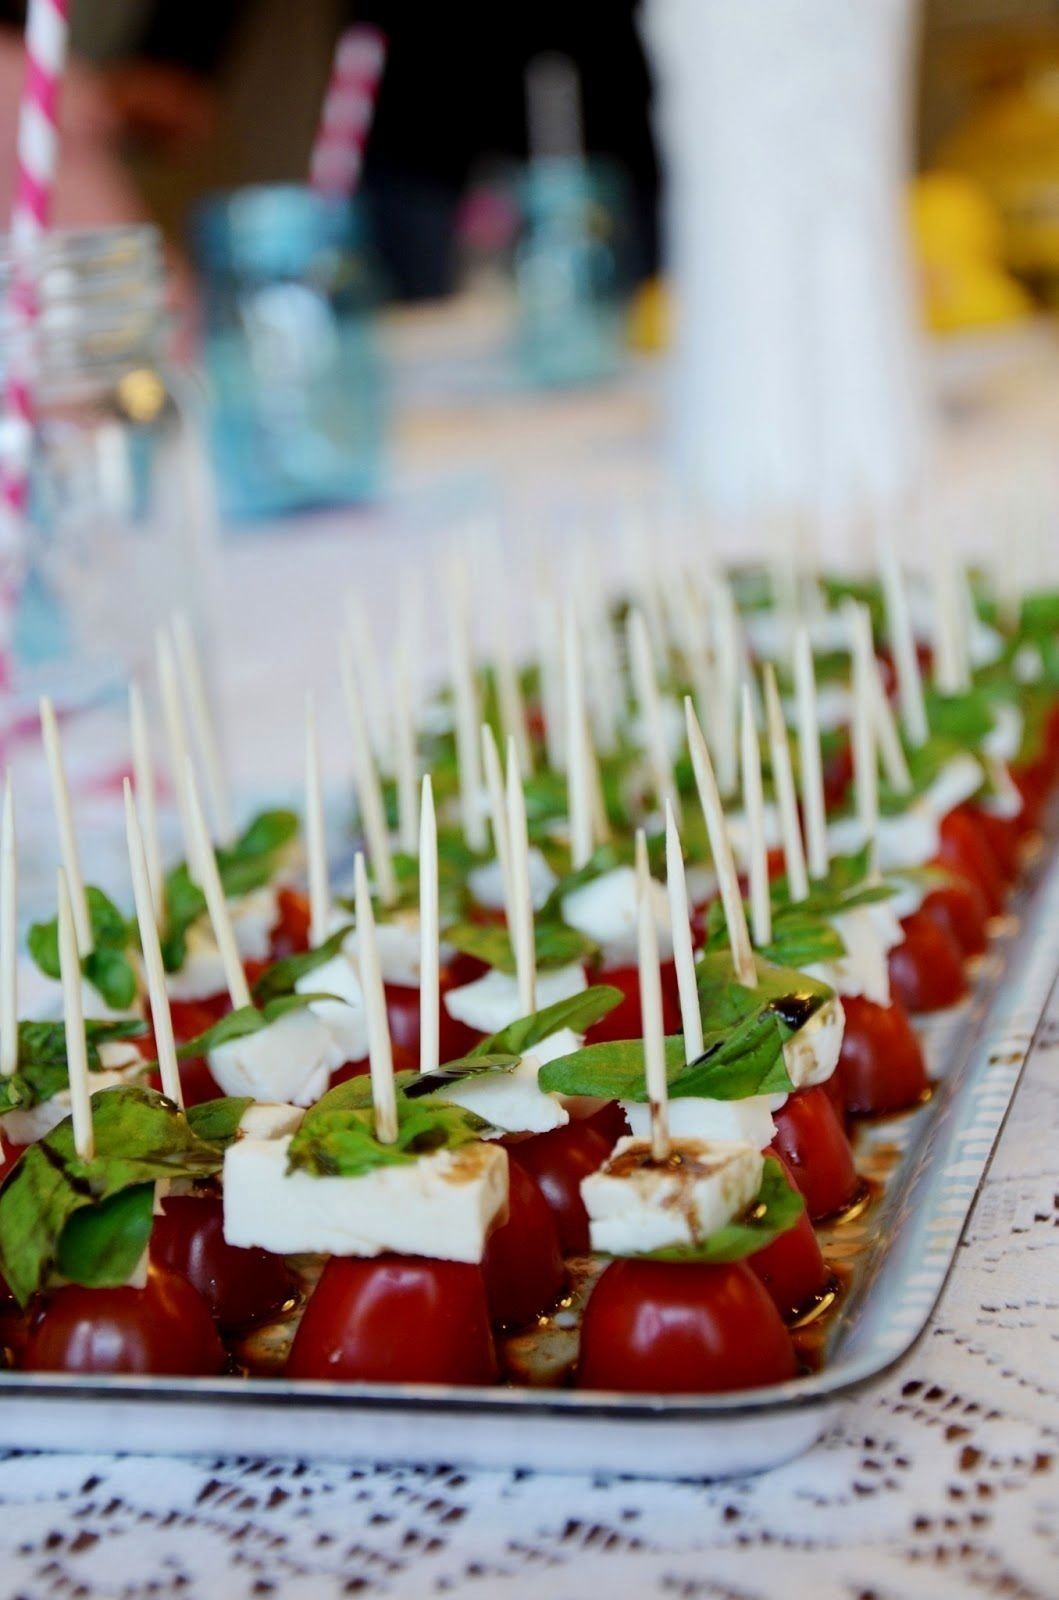 What are good dinner party themes for adults? 10 Wonderful Dinner Party Ideas For Adults 2020